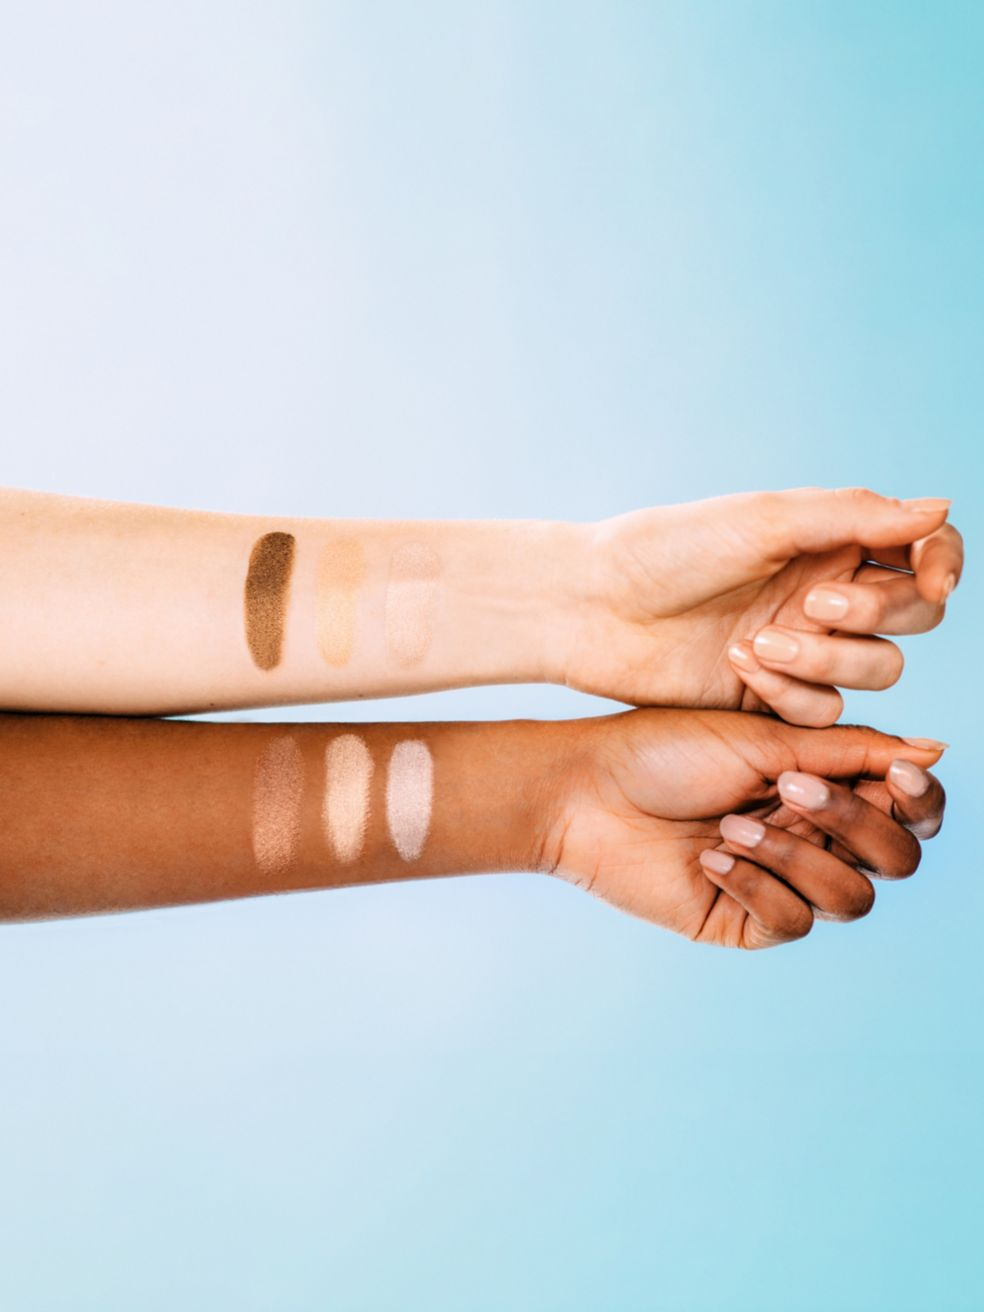 Supergoop SPF eye shadow on skin tones